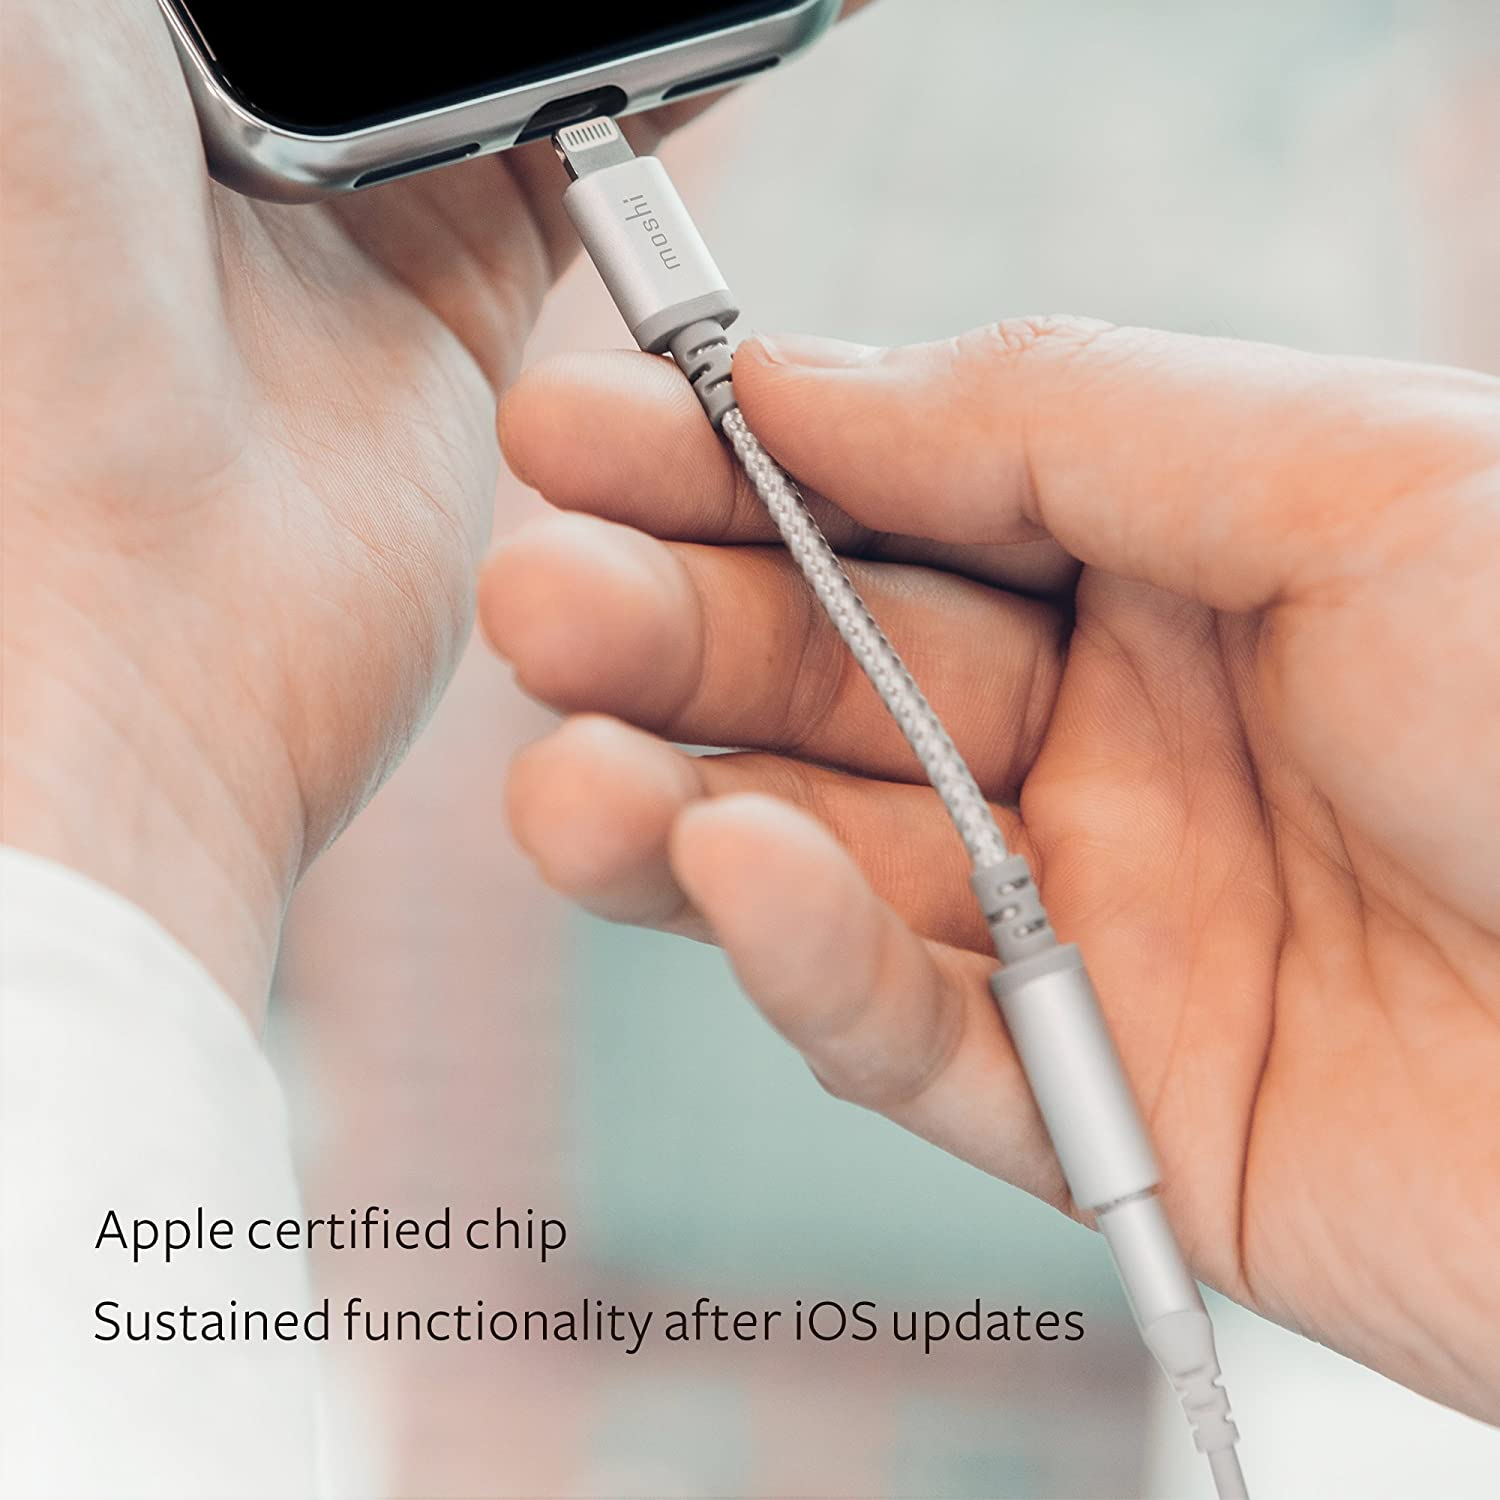 Jet Silver Ballistic Nylon Braided MFi Certified Exceeds 10,000 Bend Cycles Aluminum Housings for iPhone//iPad//iPod Touch Moshi Integra Lightning to 3.5mm Headphone Jack Adapter